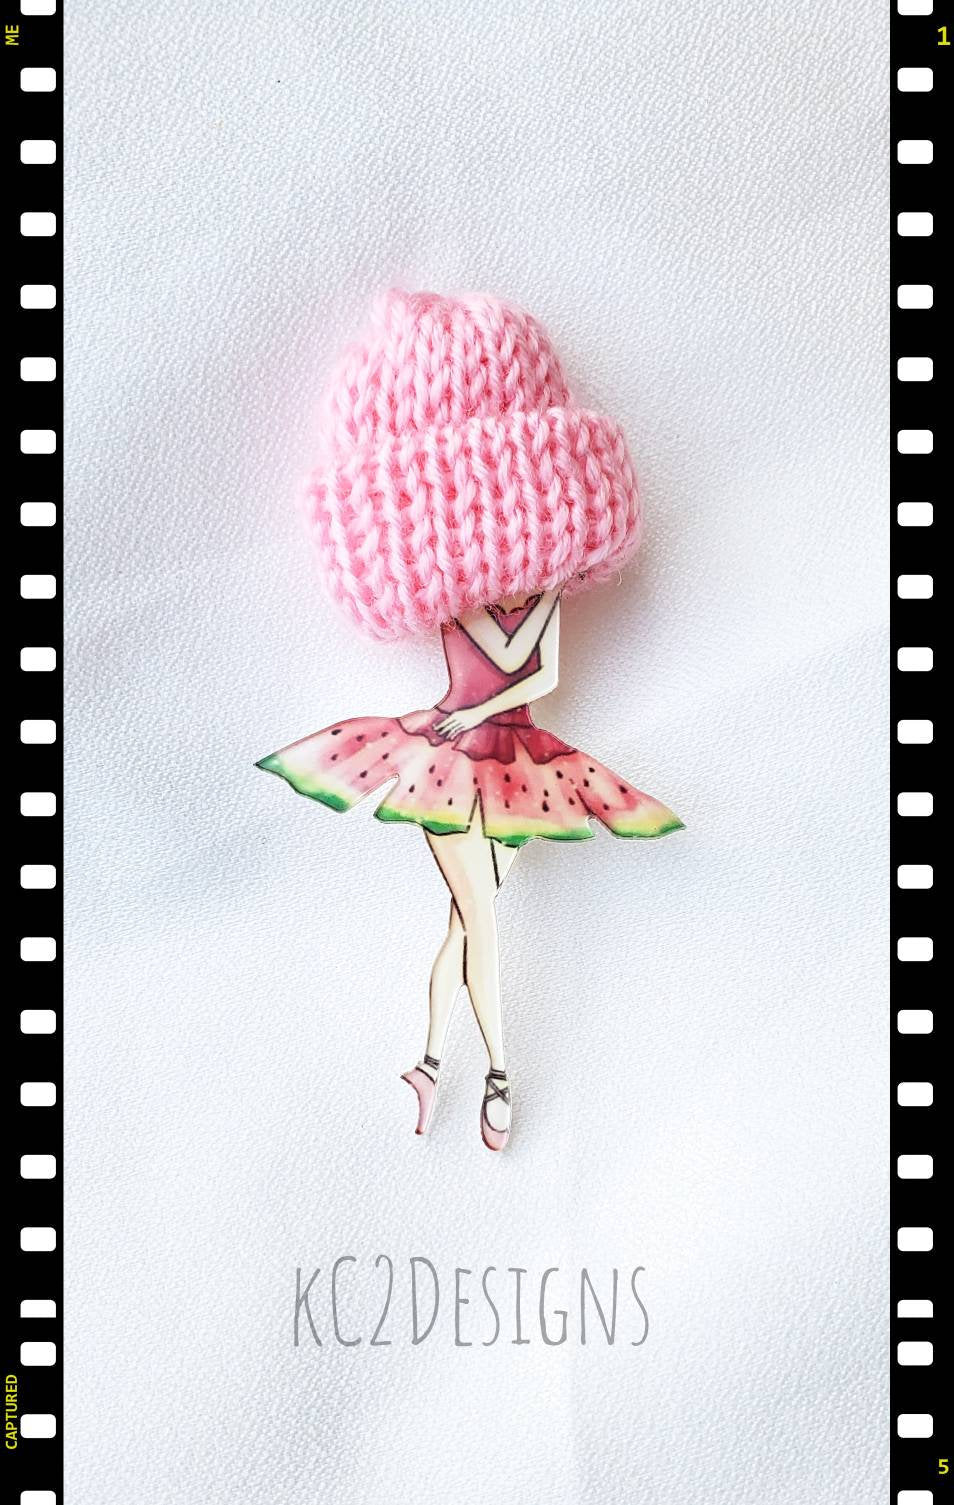 Lady brooch. Girl brooch. Morhers Day gift. Graduation gift. Purse Pin. Hat brooch. Happy mail. Backpack pin. Fun mail. Ballerina pin. Hat.